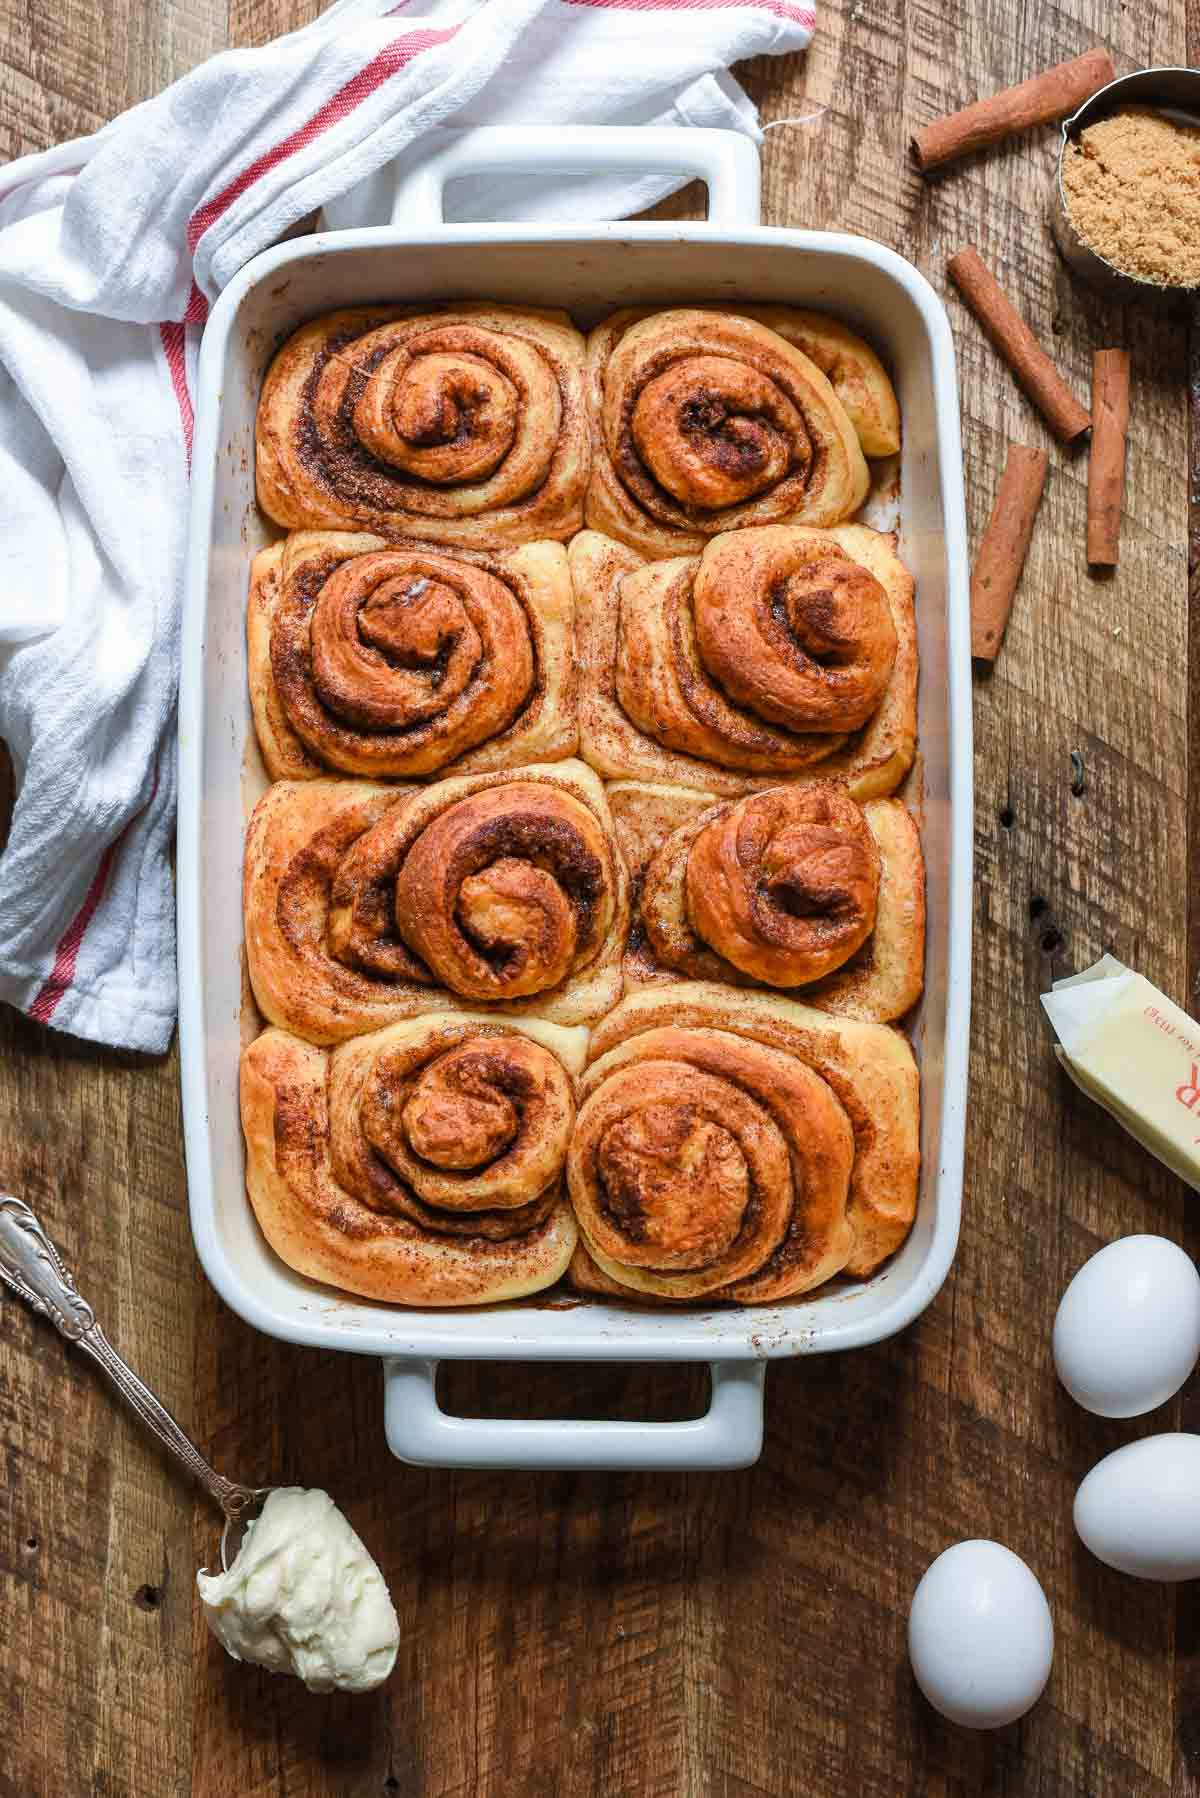 These big, fluffy, soft, and chewy Overnight Cinnamon Rolls are everything a cinnamon roll should be. Pair with cream cheese frosting for a breakfast treat!